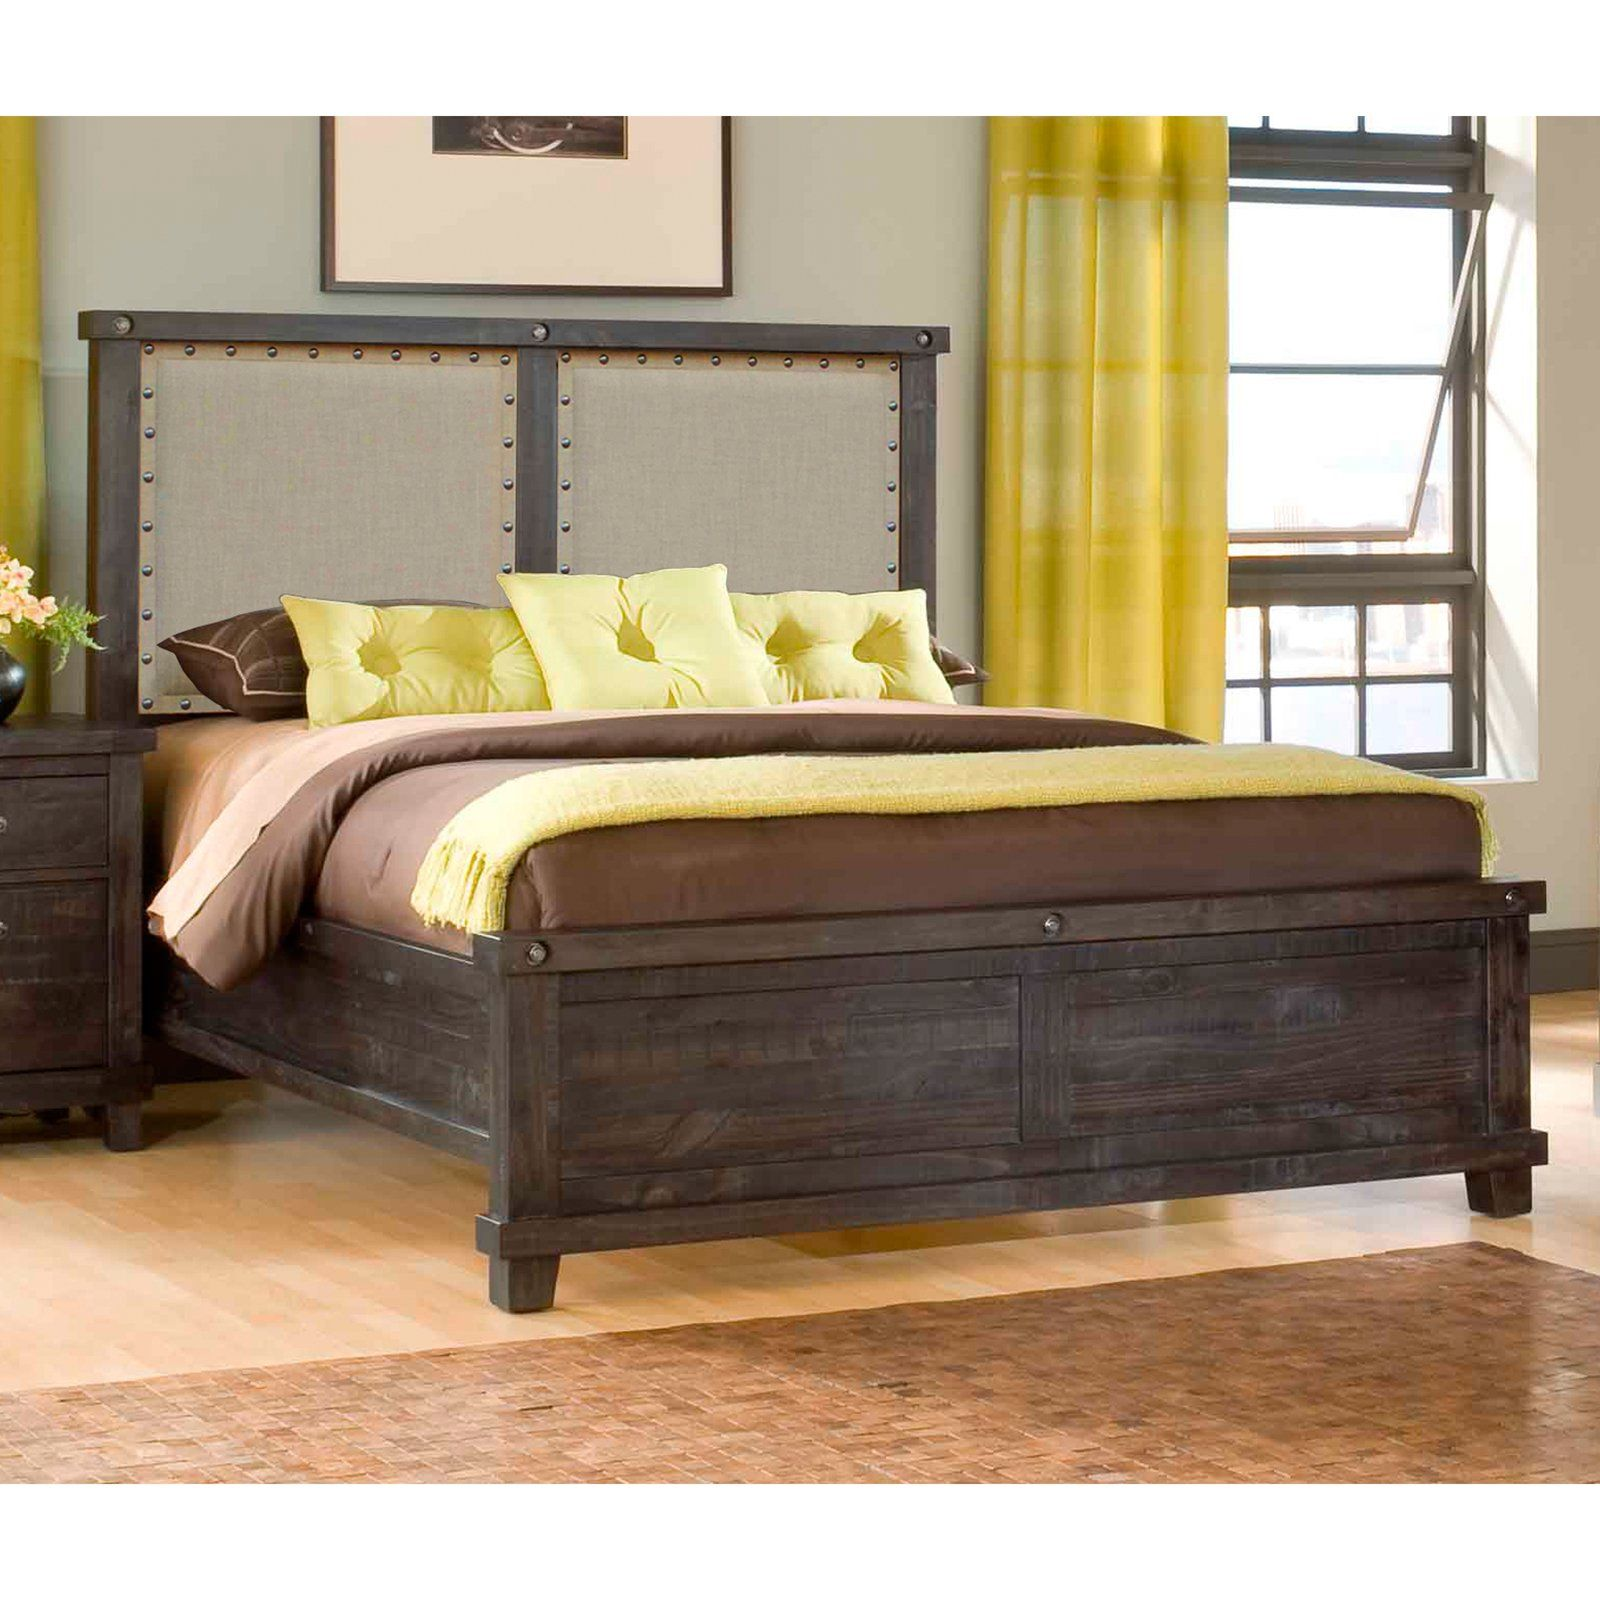 Yosemite Upholstered Panel Bed Upholstered panel bed